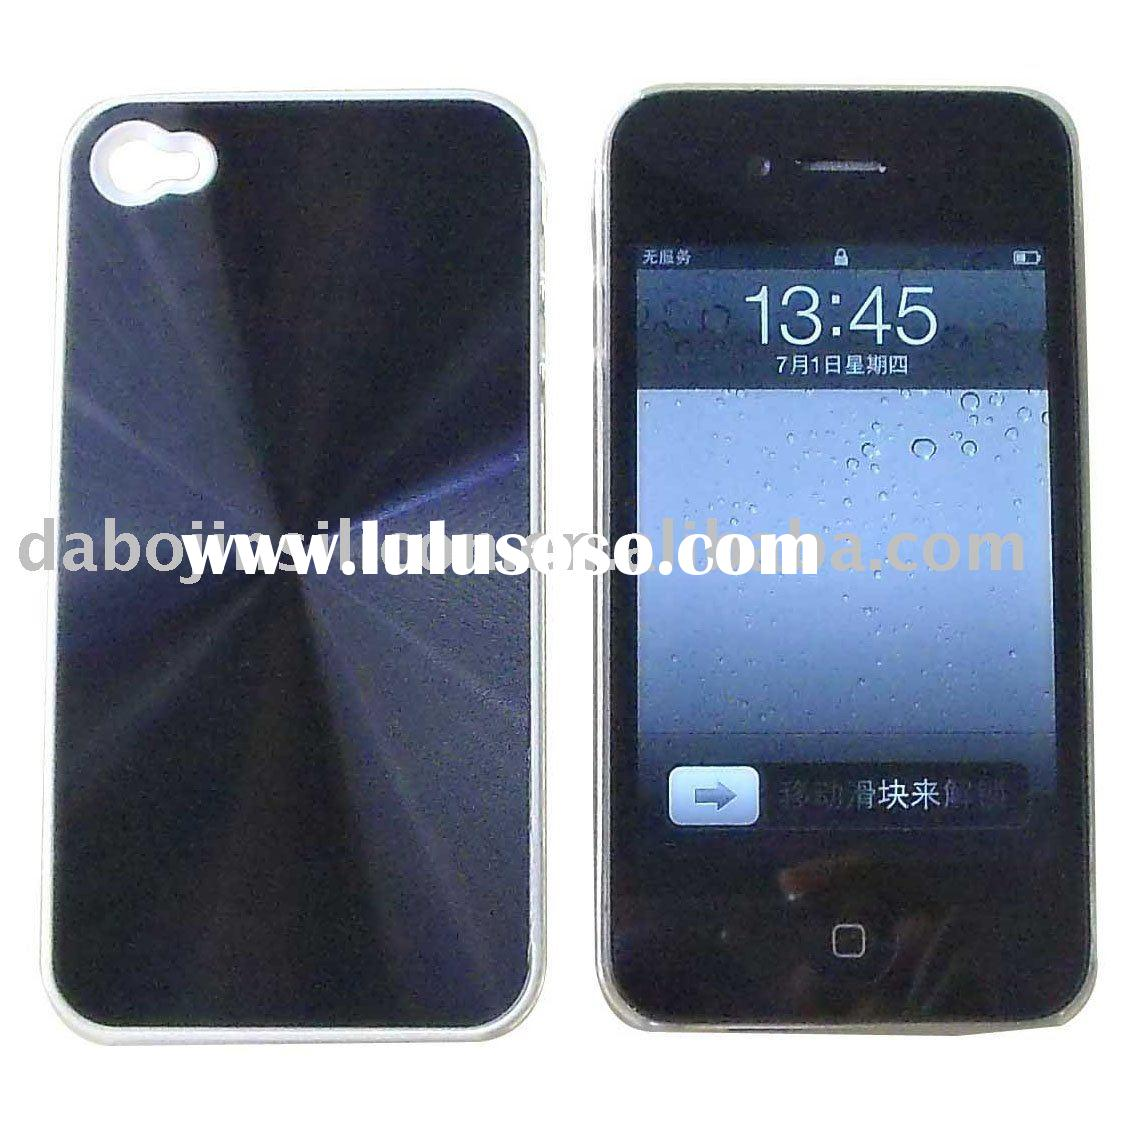 waterproof case FOR mobile phone iphone 4g